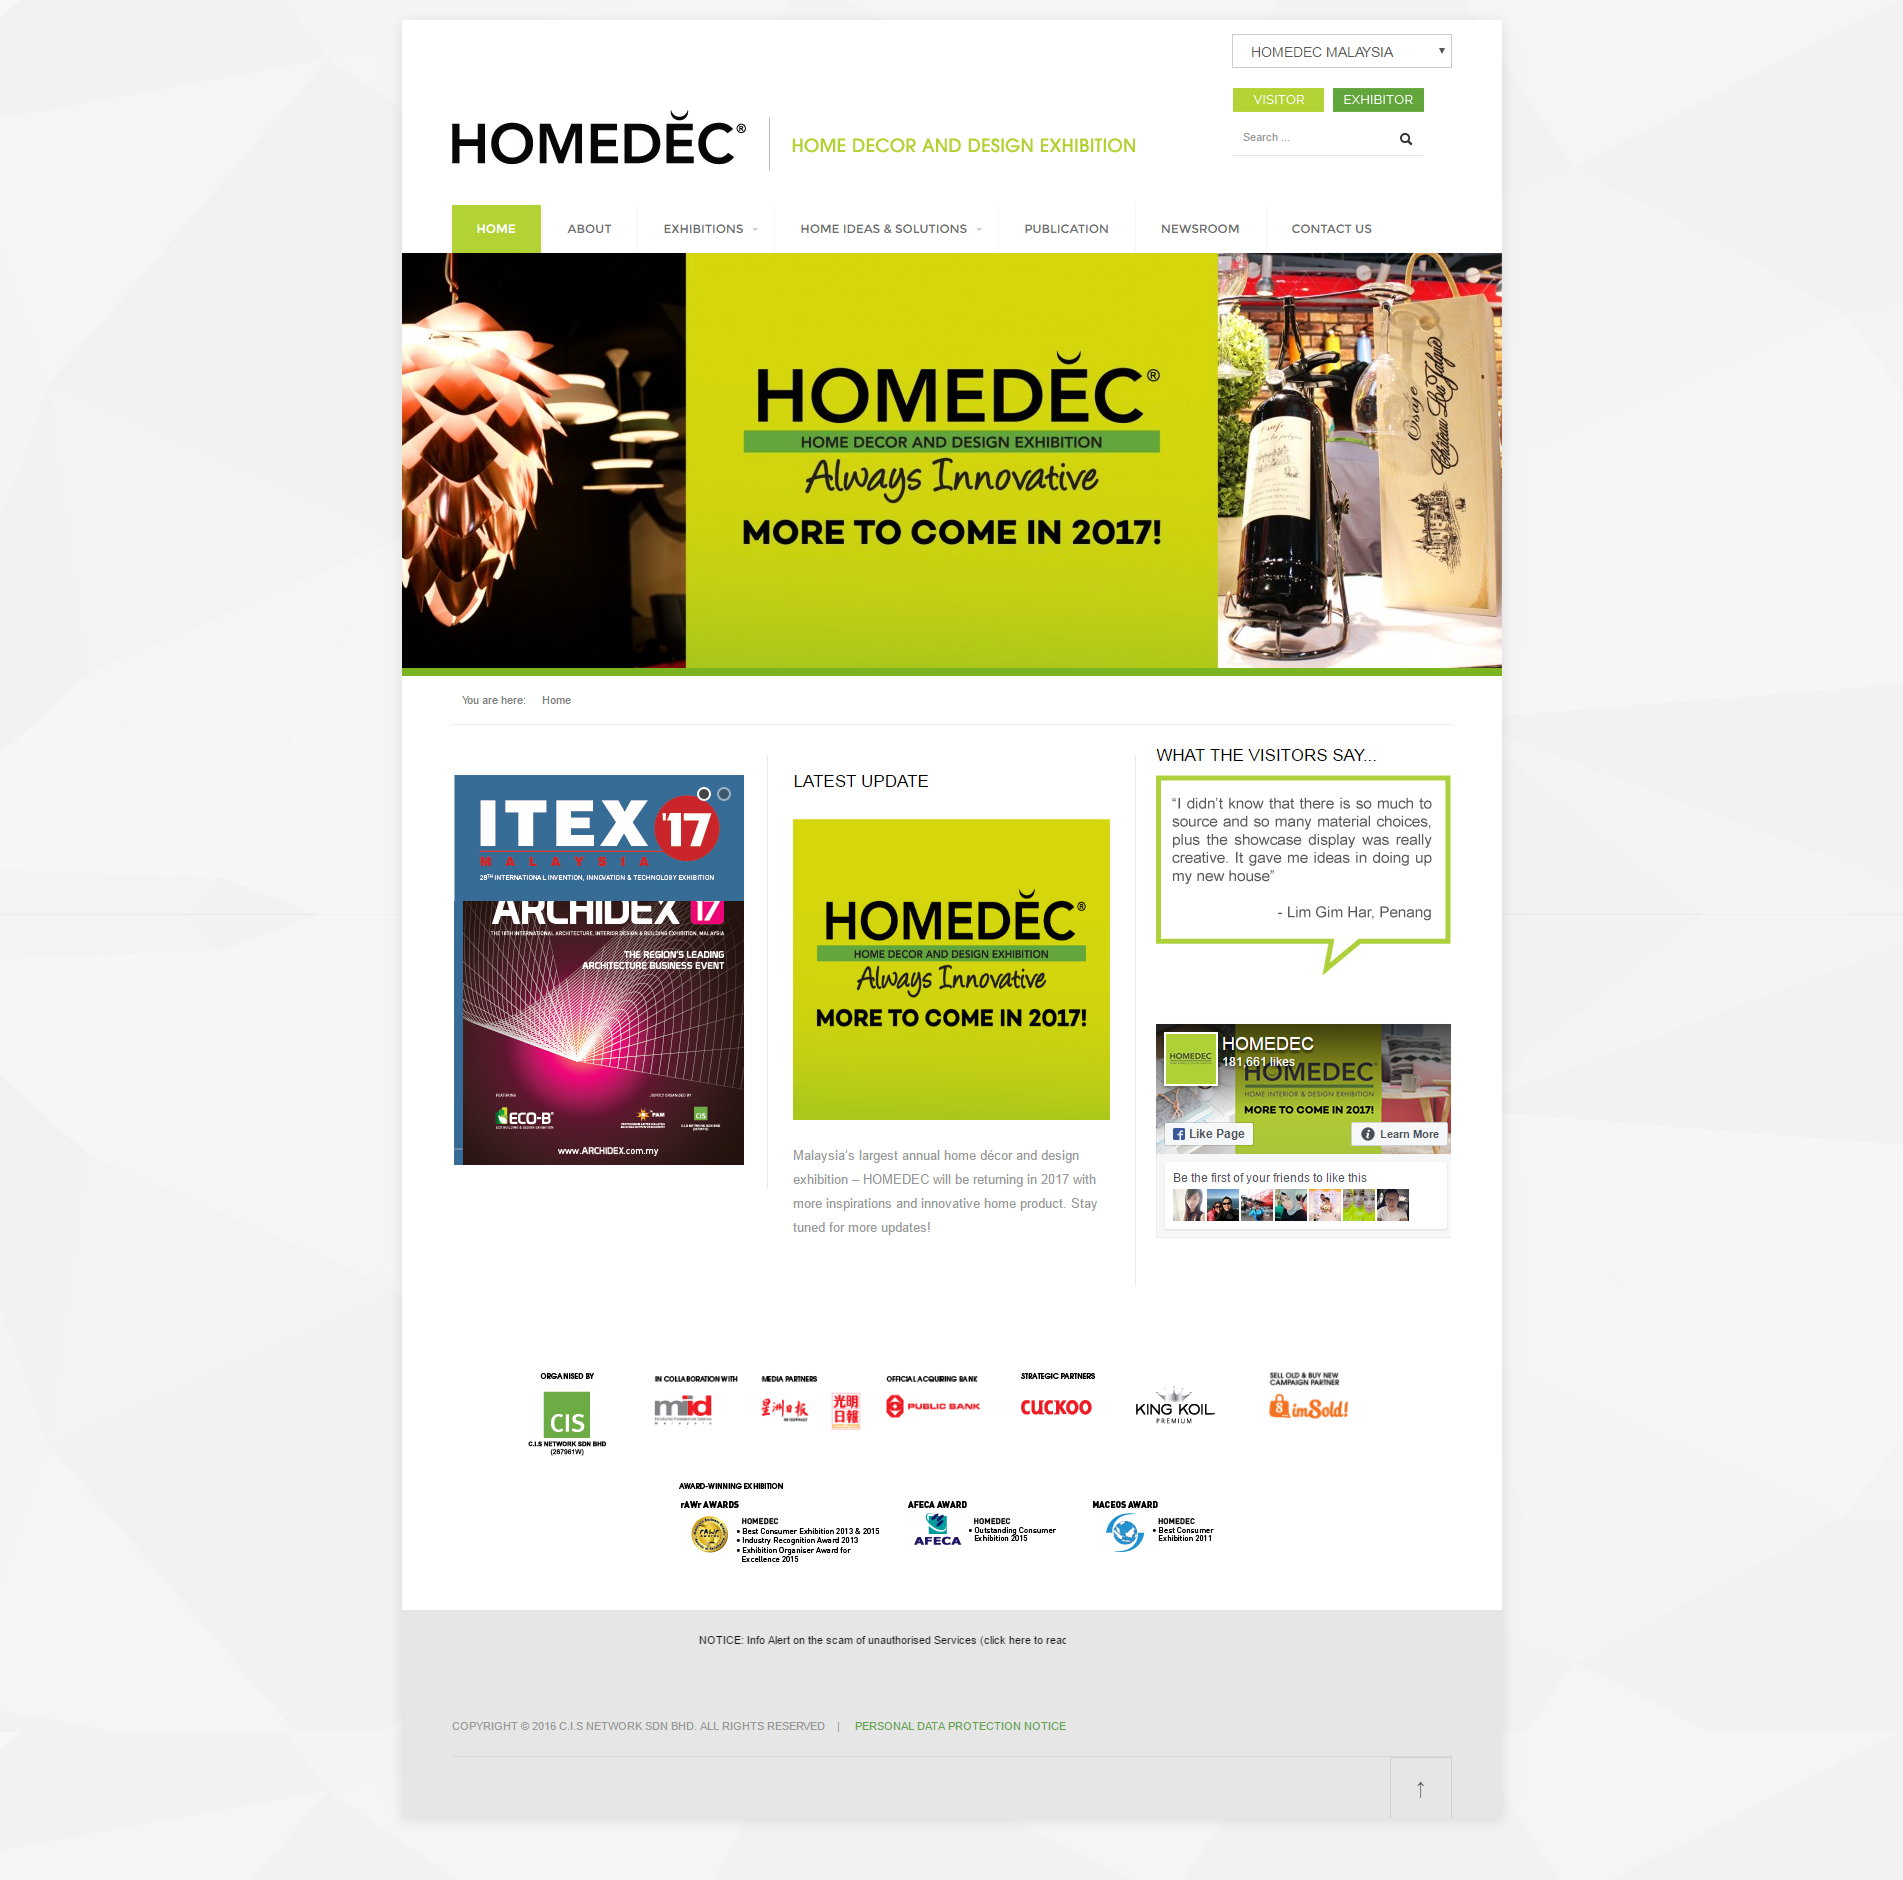 HOMEDEC Home